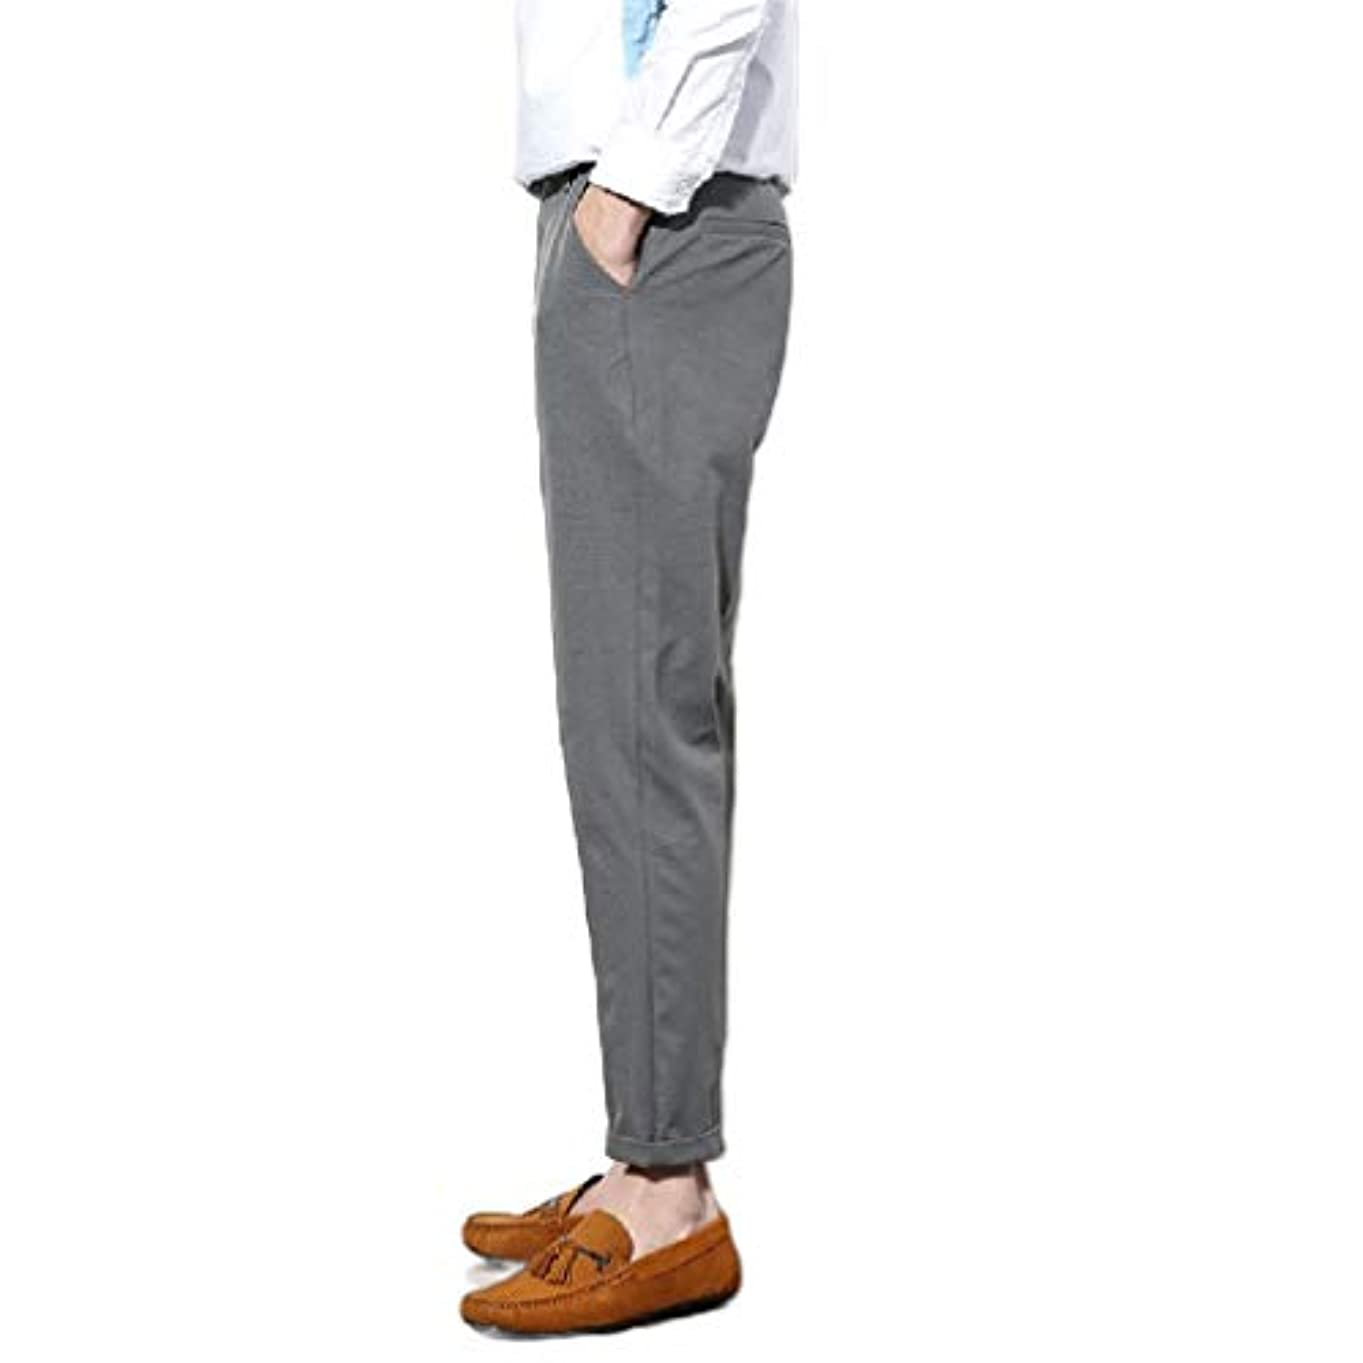 強制的出口統合するAngelSpace Mens Big and Tall Classic Fit Tenths Pants No Iron Dress Pants